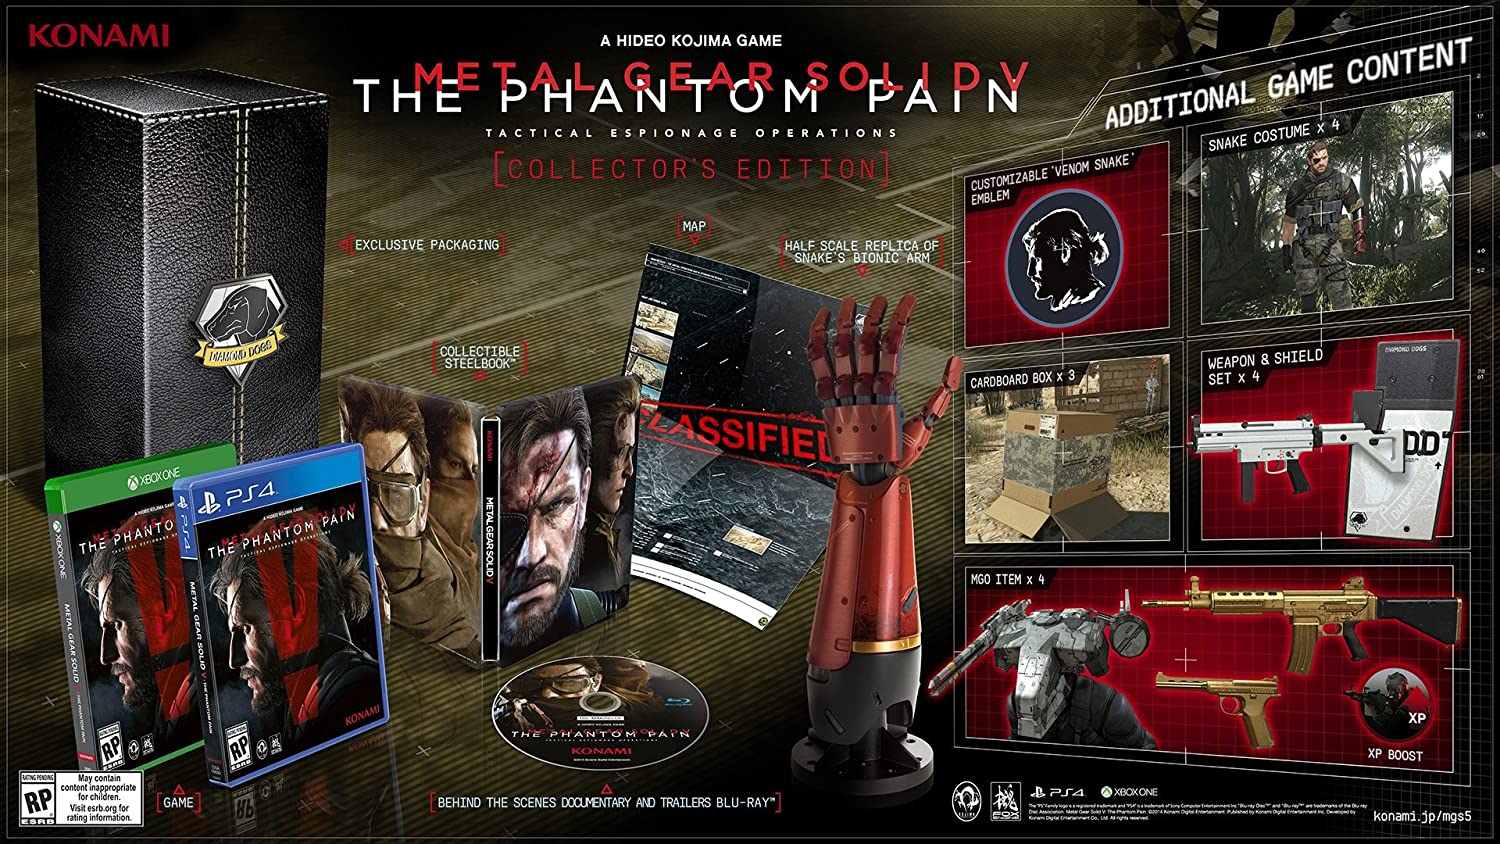 Metal gear solid v: the phantom pain collector's edition   gameszone.